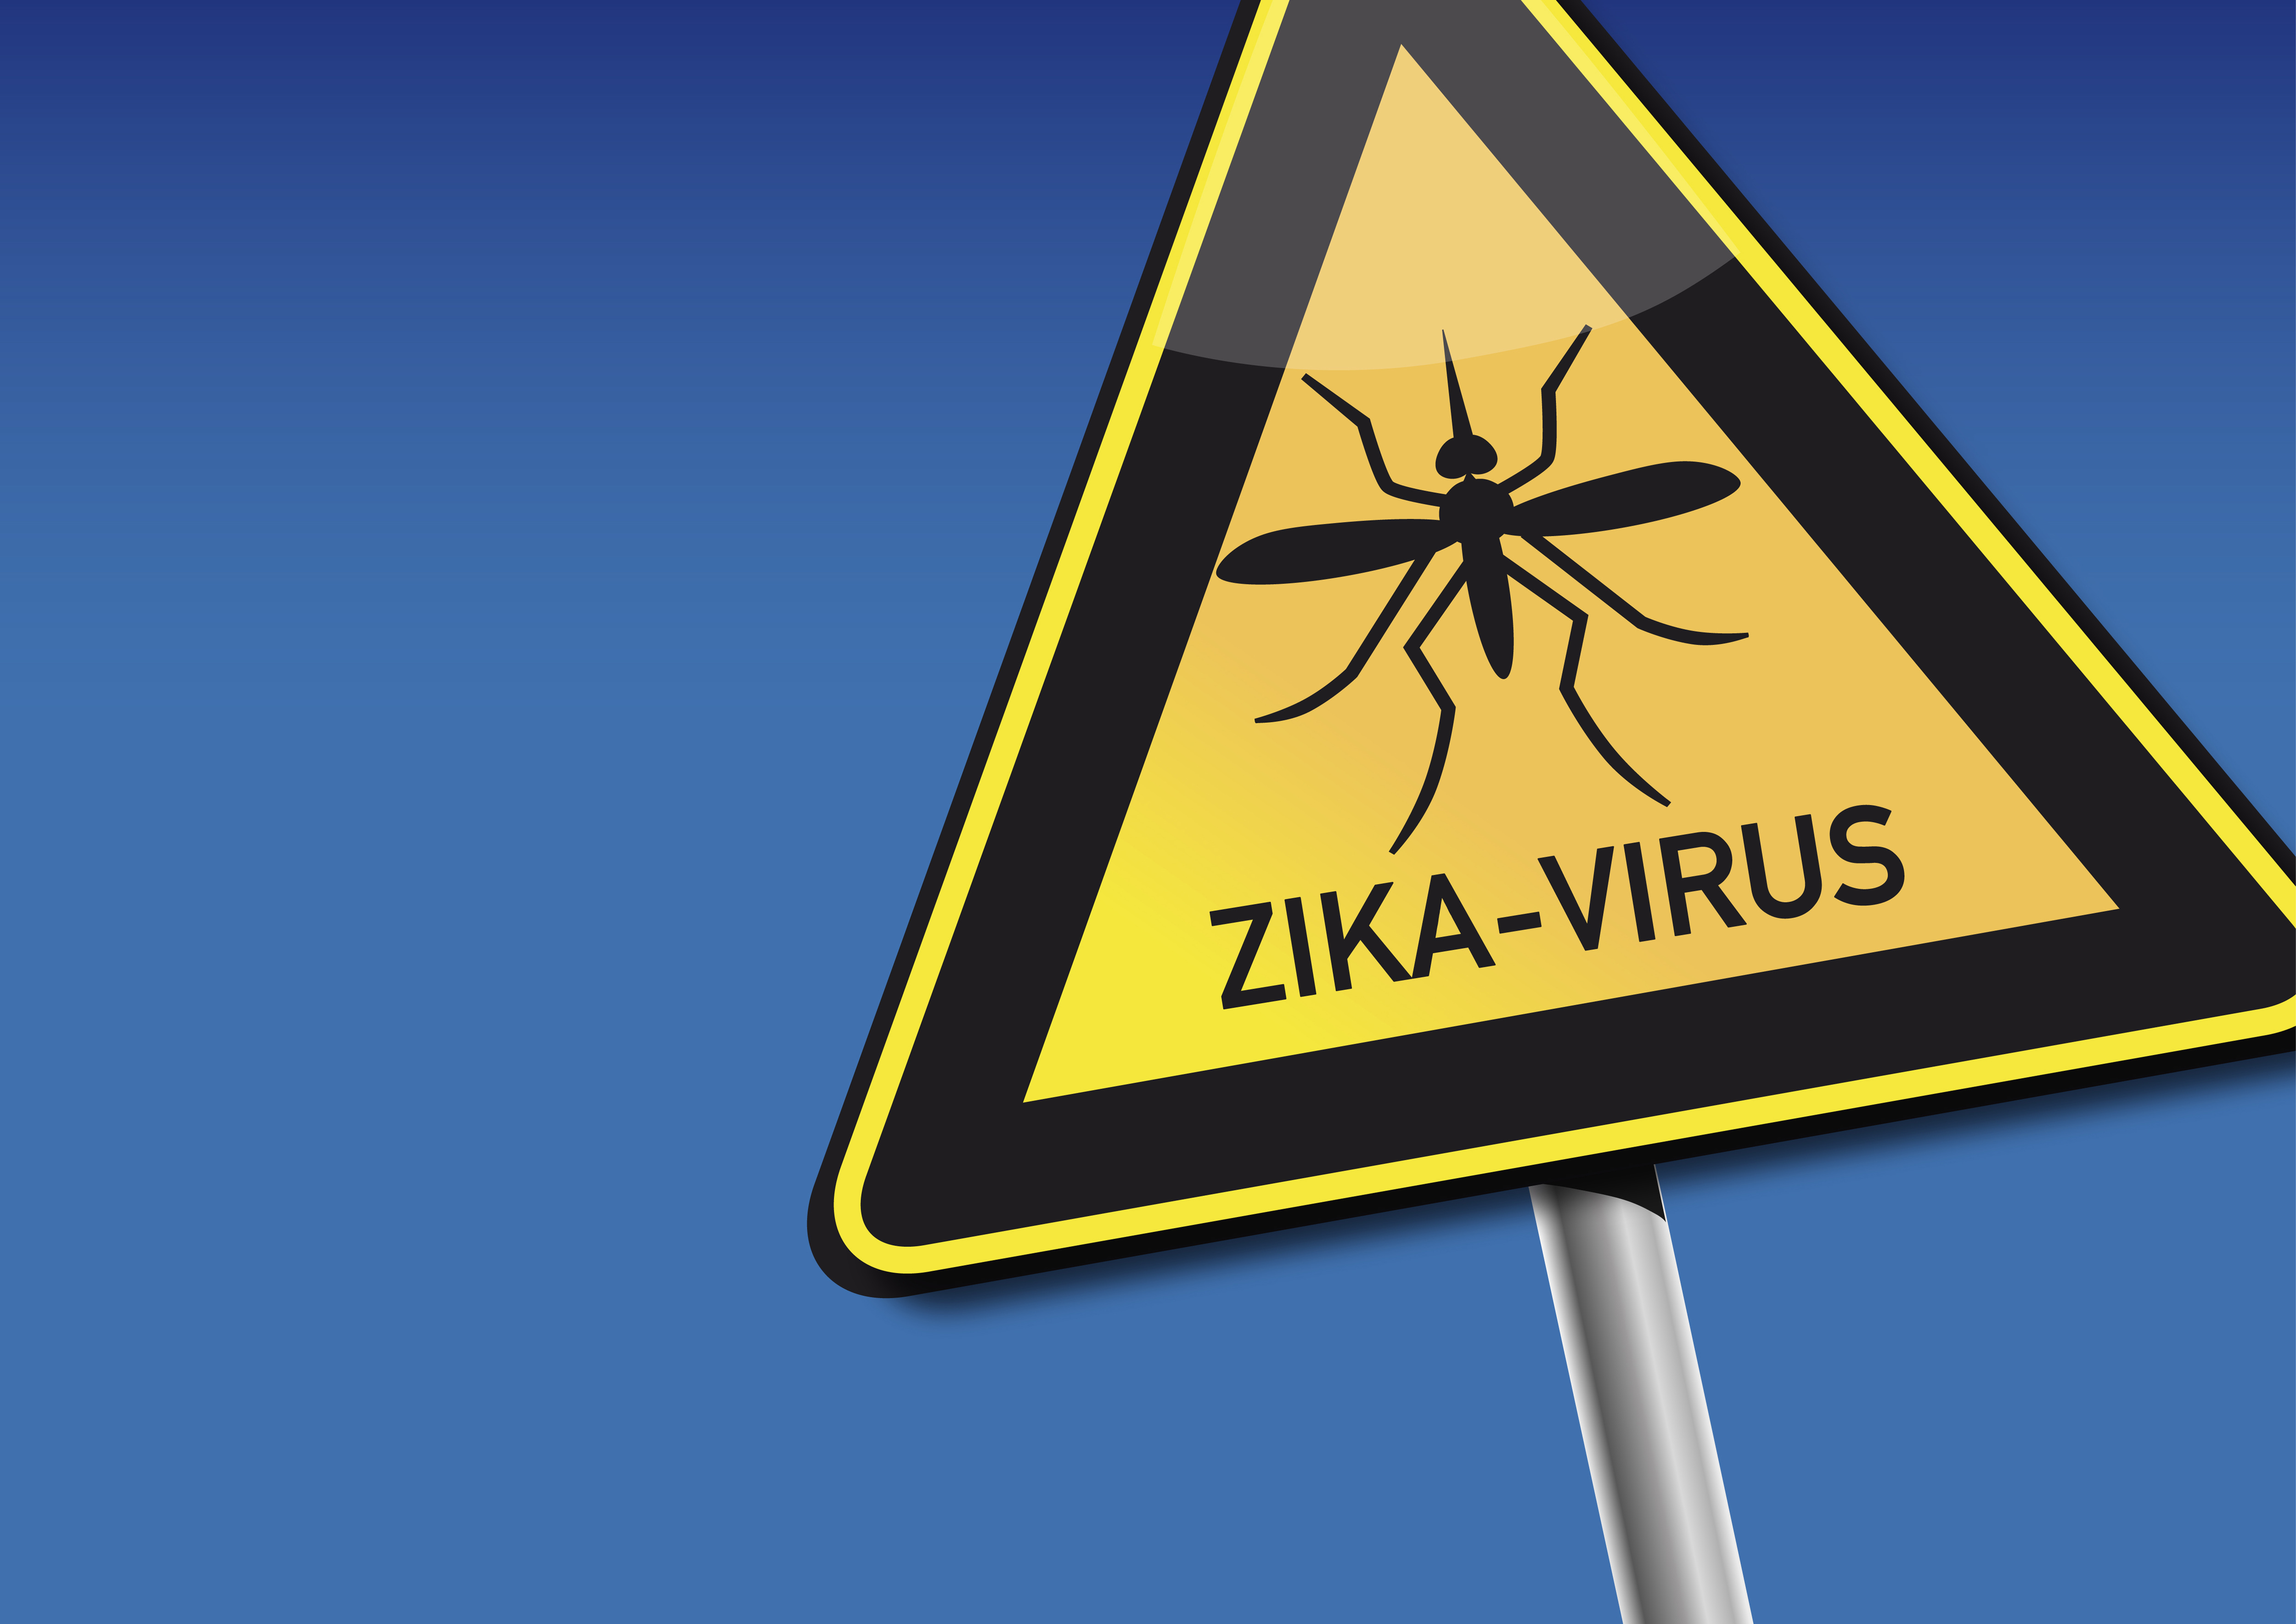 Texas Infant's Death Linked to Zika